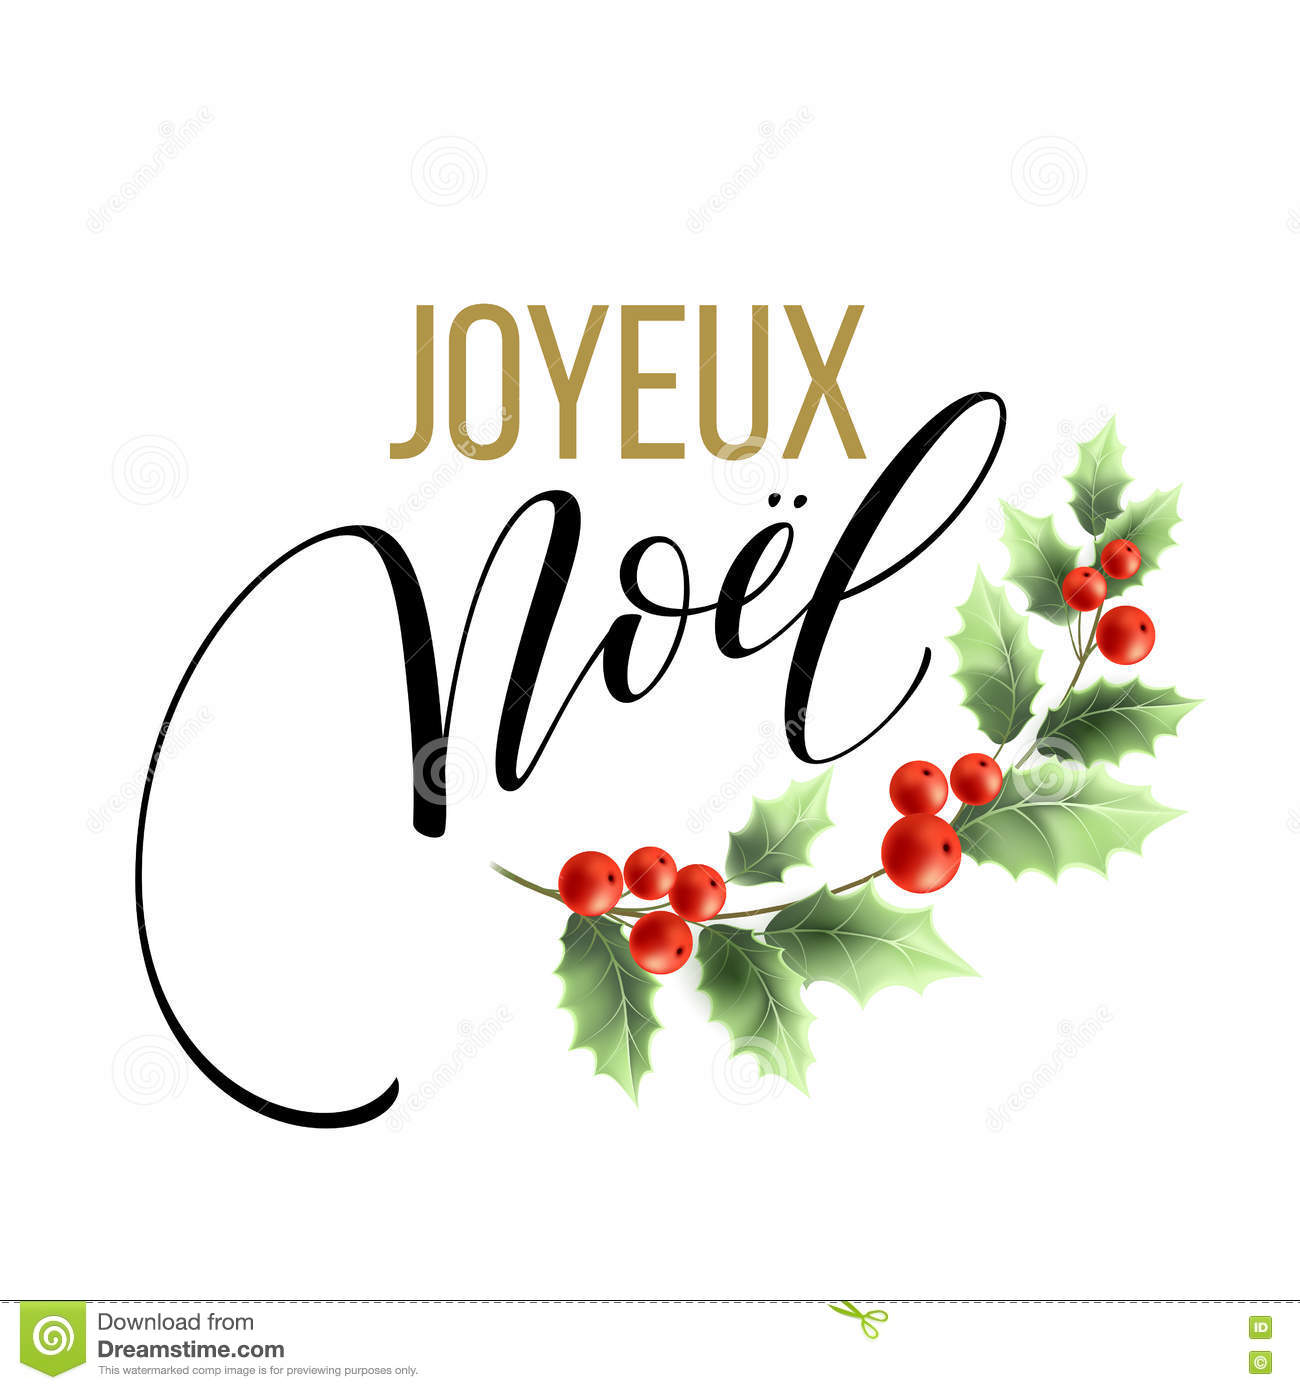 Merry christmas card template with greetings in french language merry christmas card template with greetings in french language joyeux noel vector illustration m4hsunfo Gallery